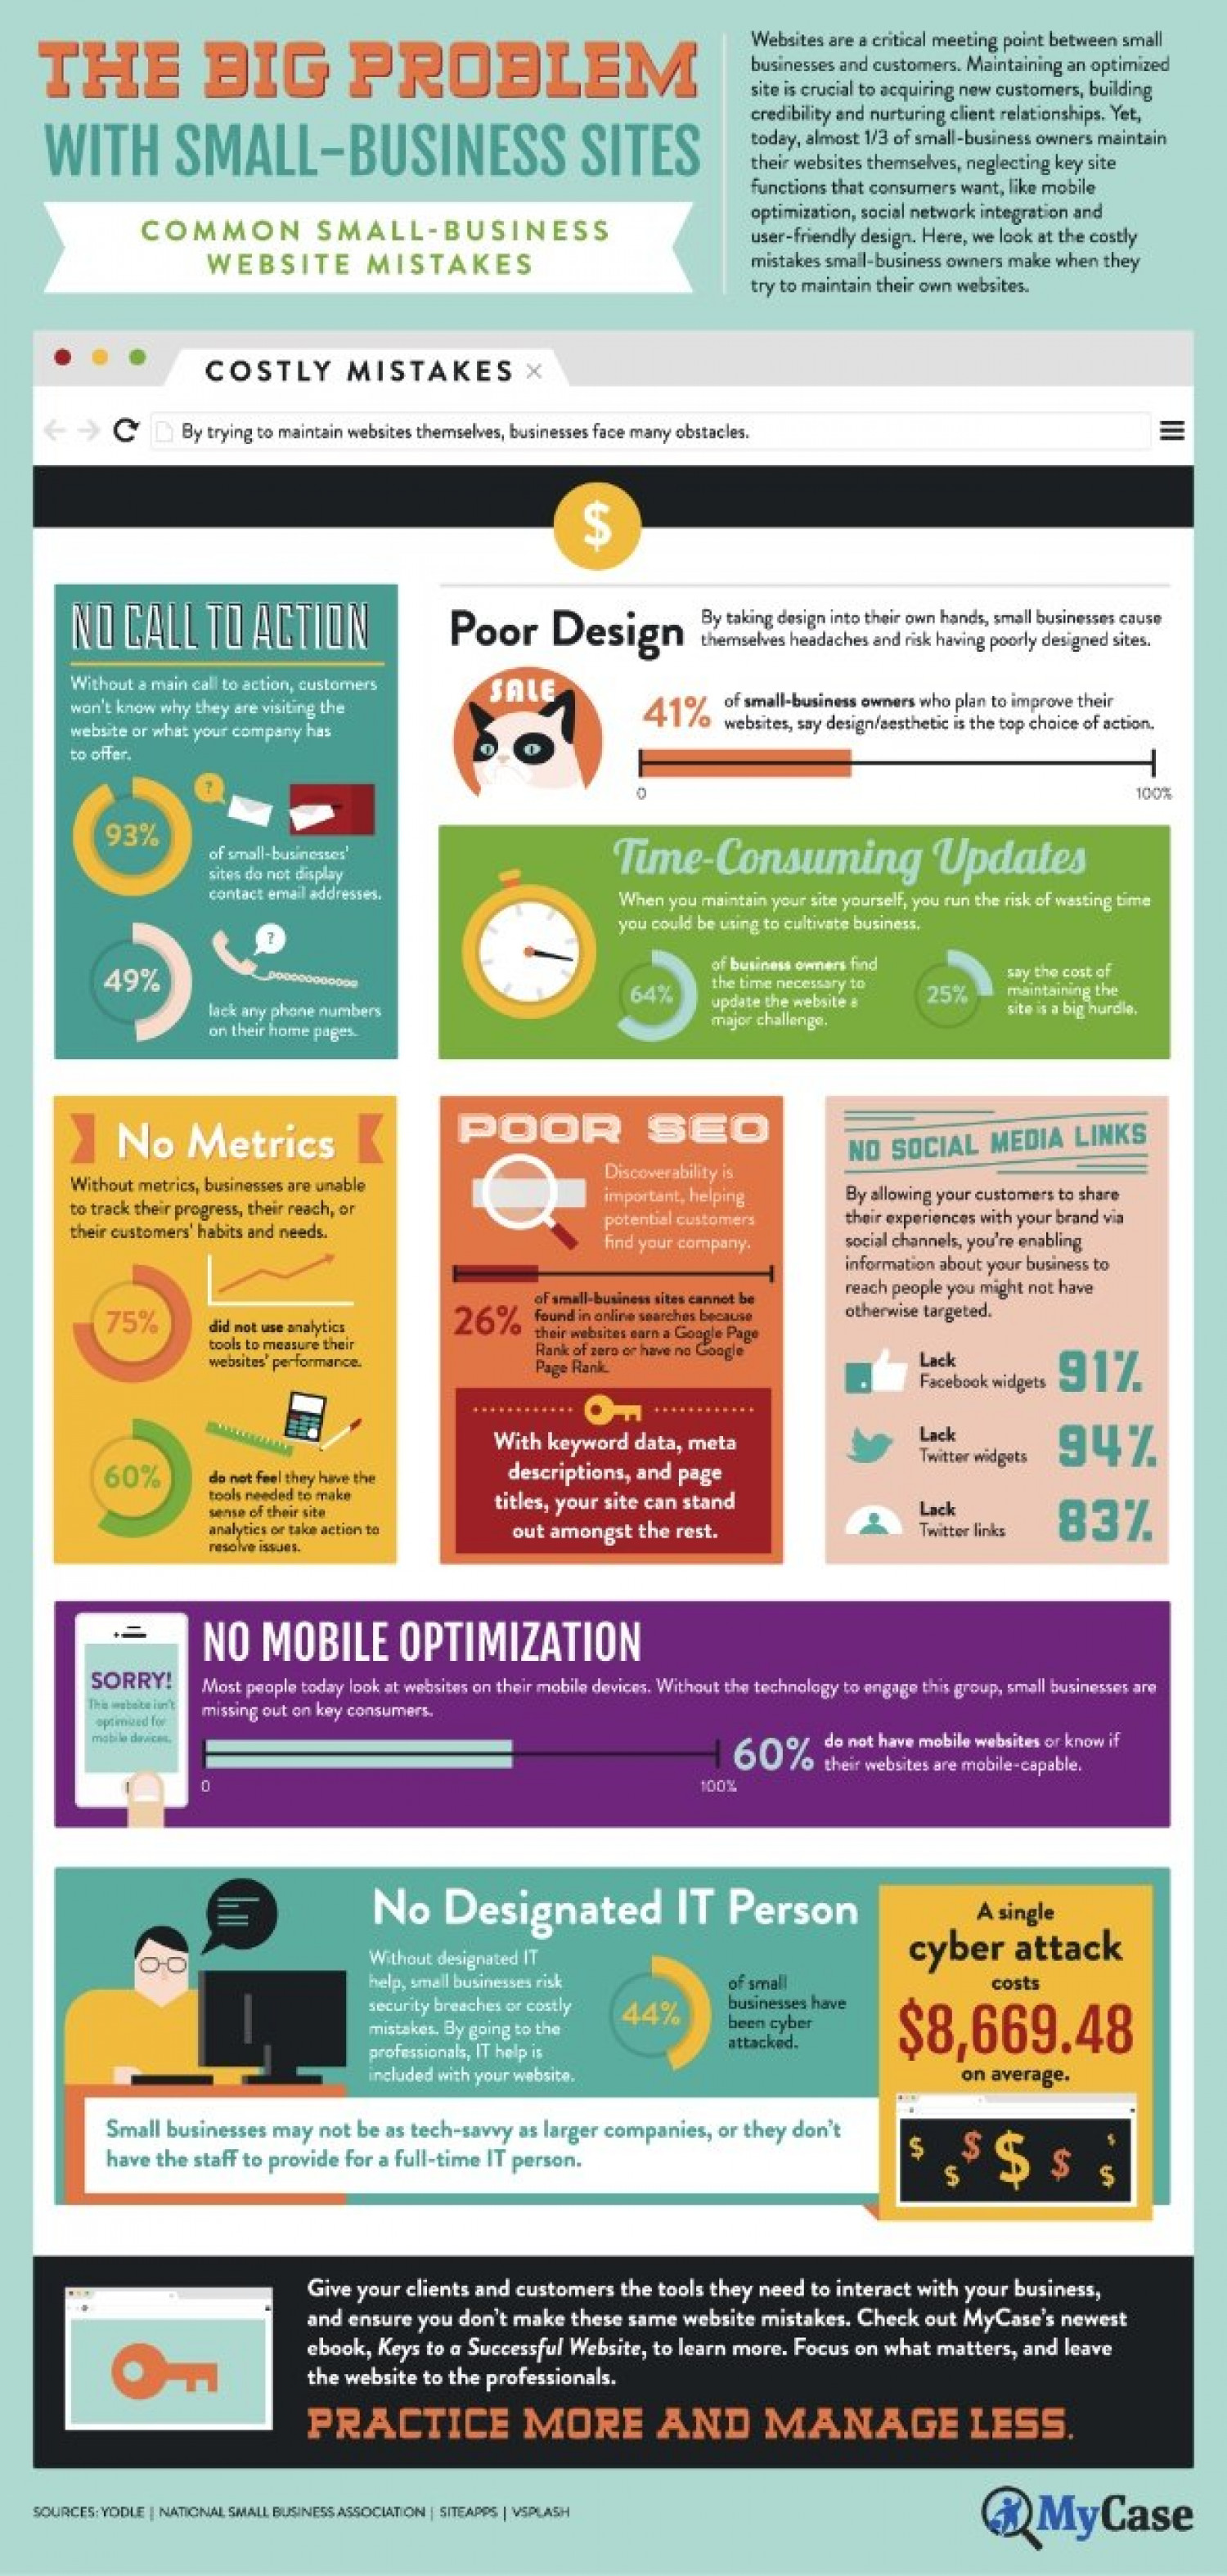 The Big Problem With Small-Business Sites Infographic